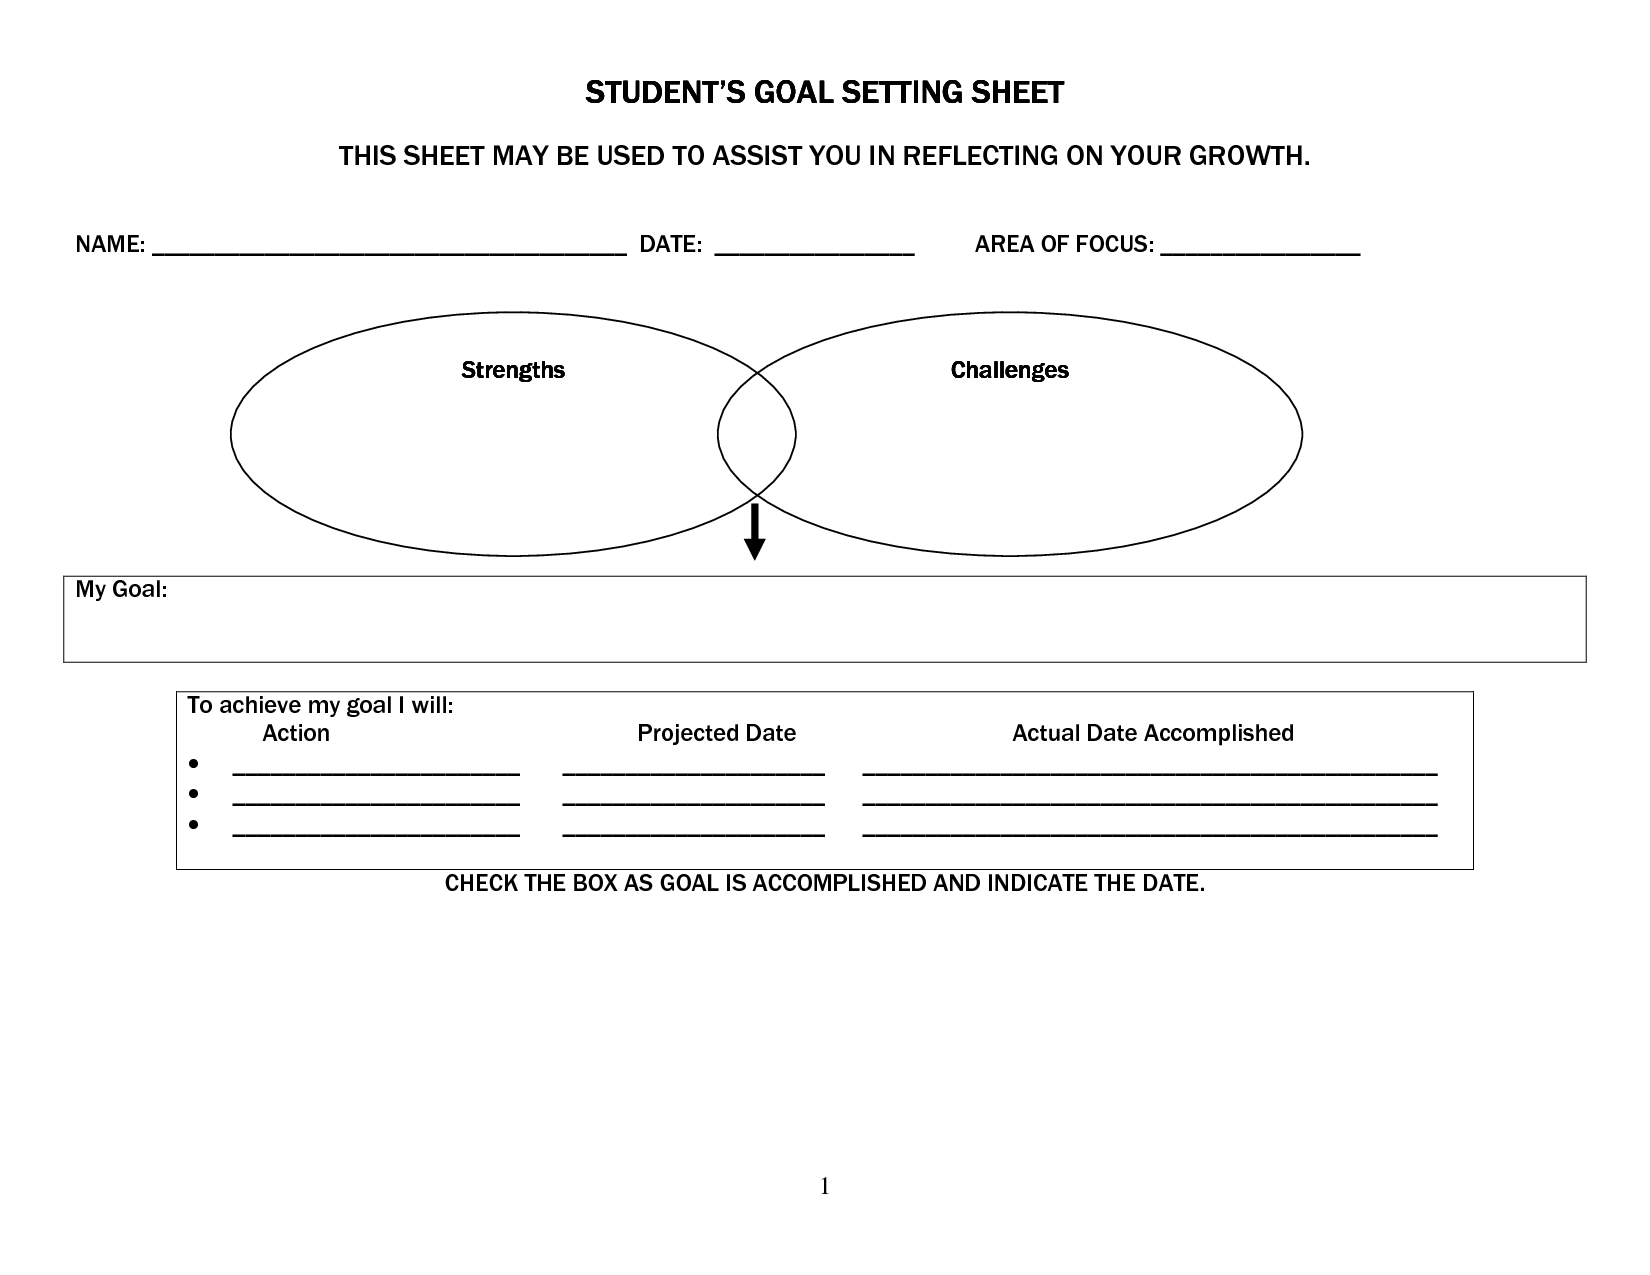 School Goal Setting Sheet